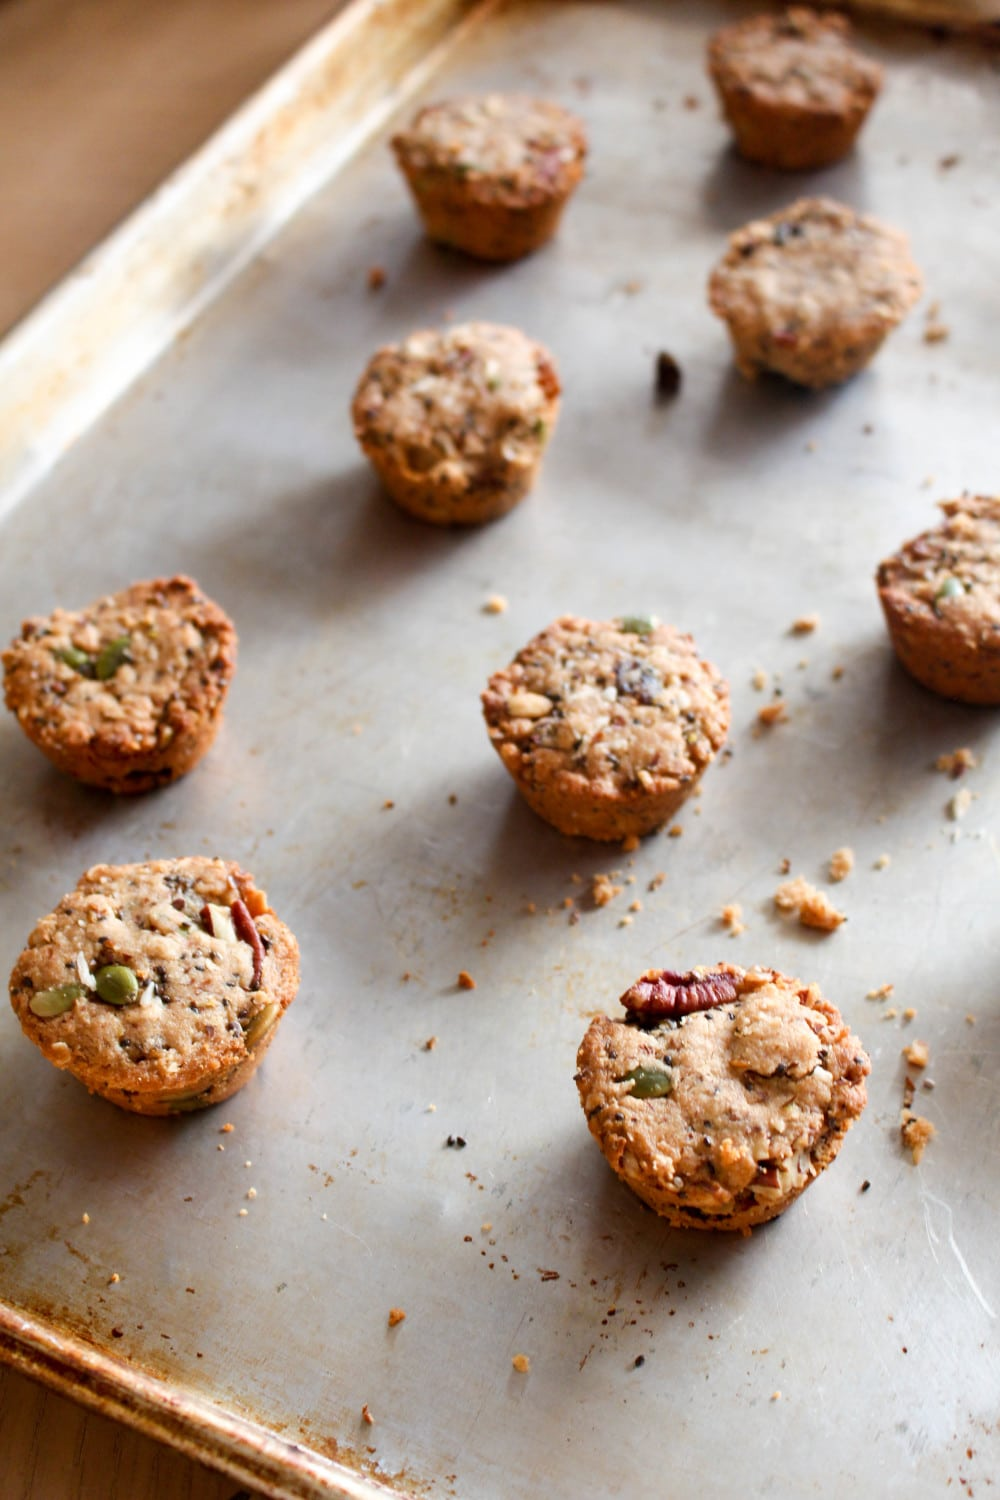 Gluten-Free and Vegan bites that taste just like the real thing - if not better!